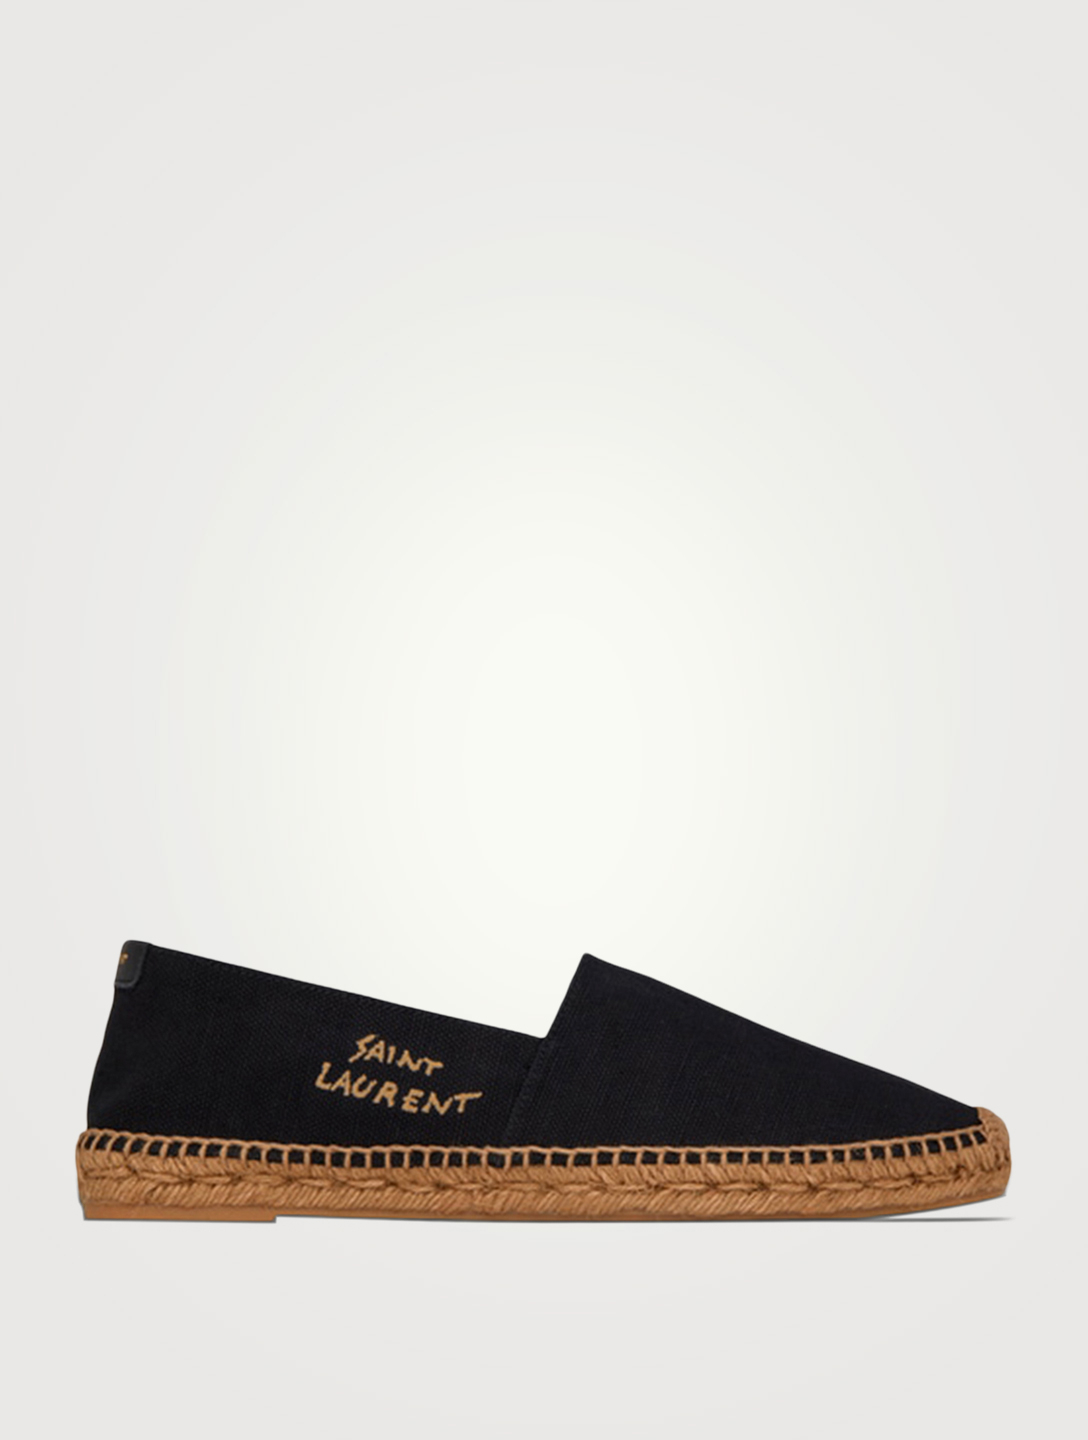 SAINT LAURENT Canvas Espadrilles Women's Black